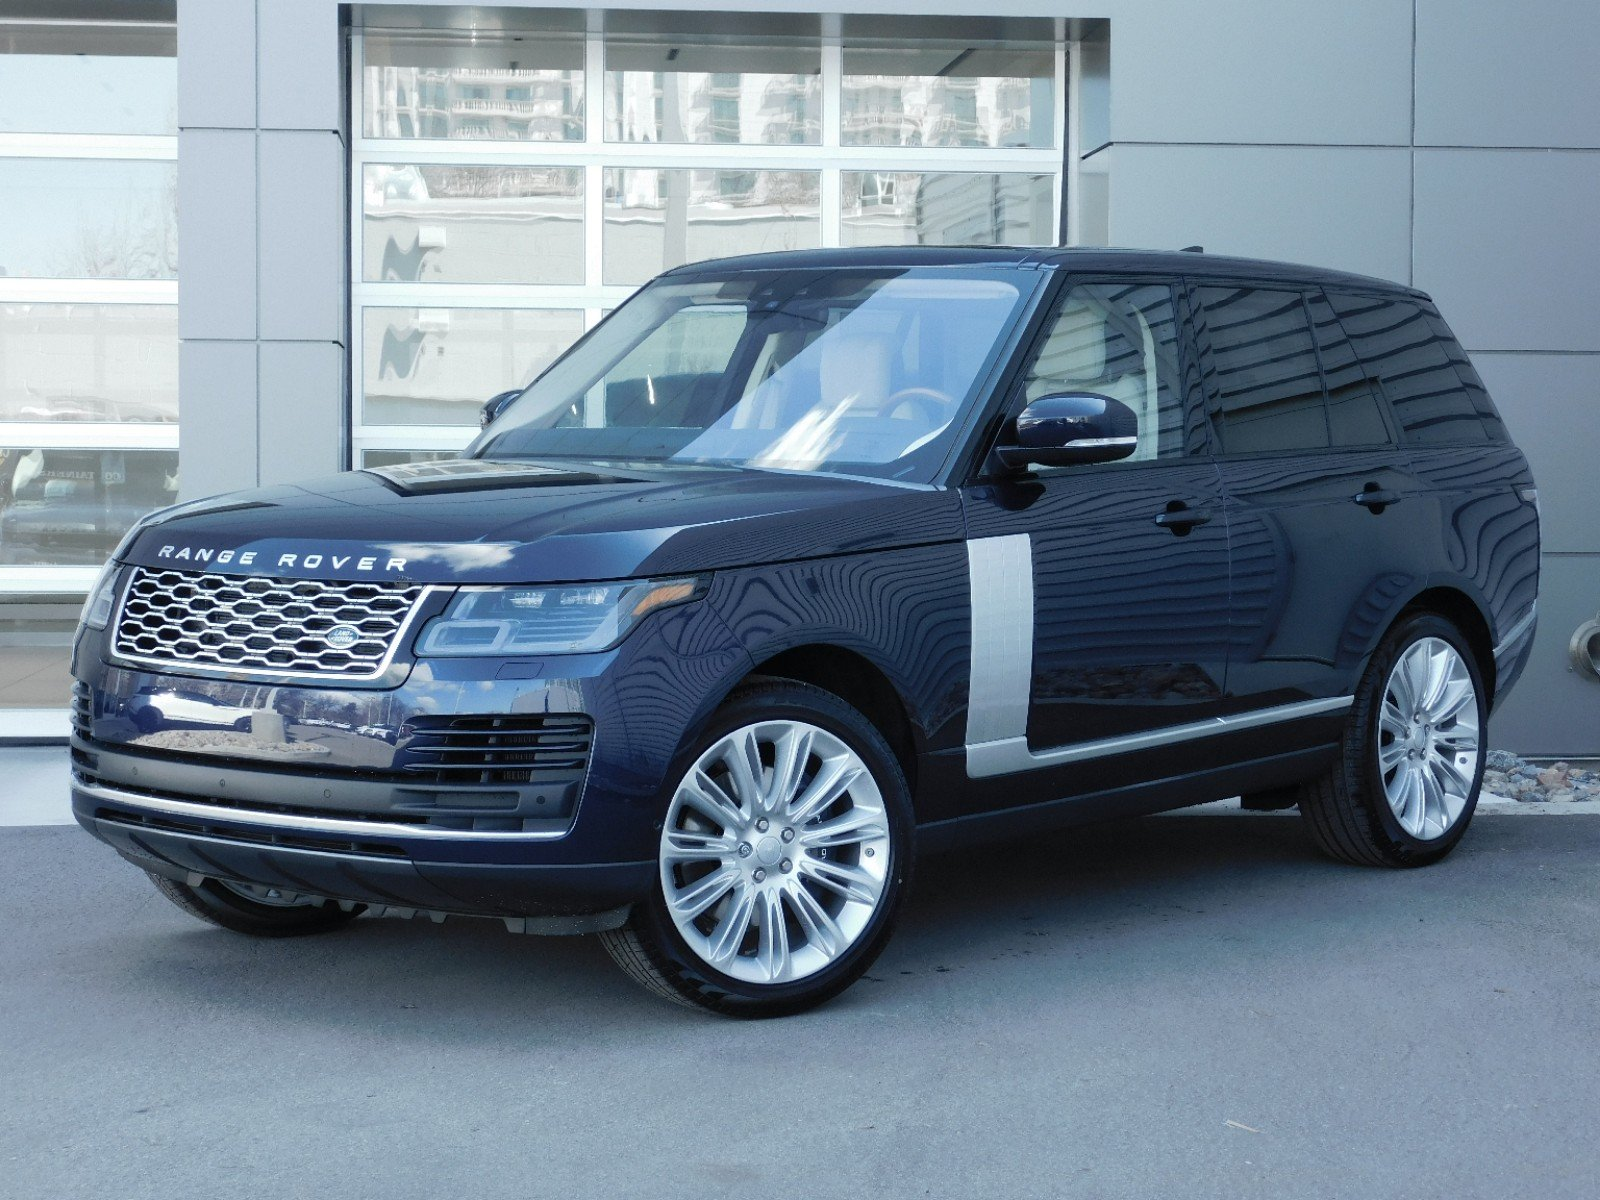 Land Rover Range Rover >> New Land Rover Range Rover Hse With Navigation 4wd